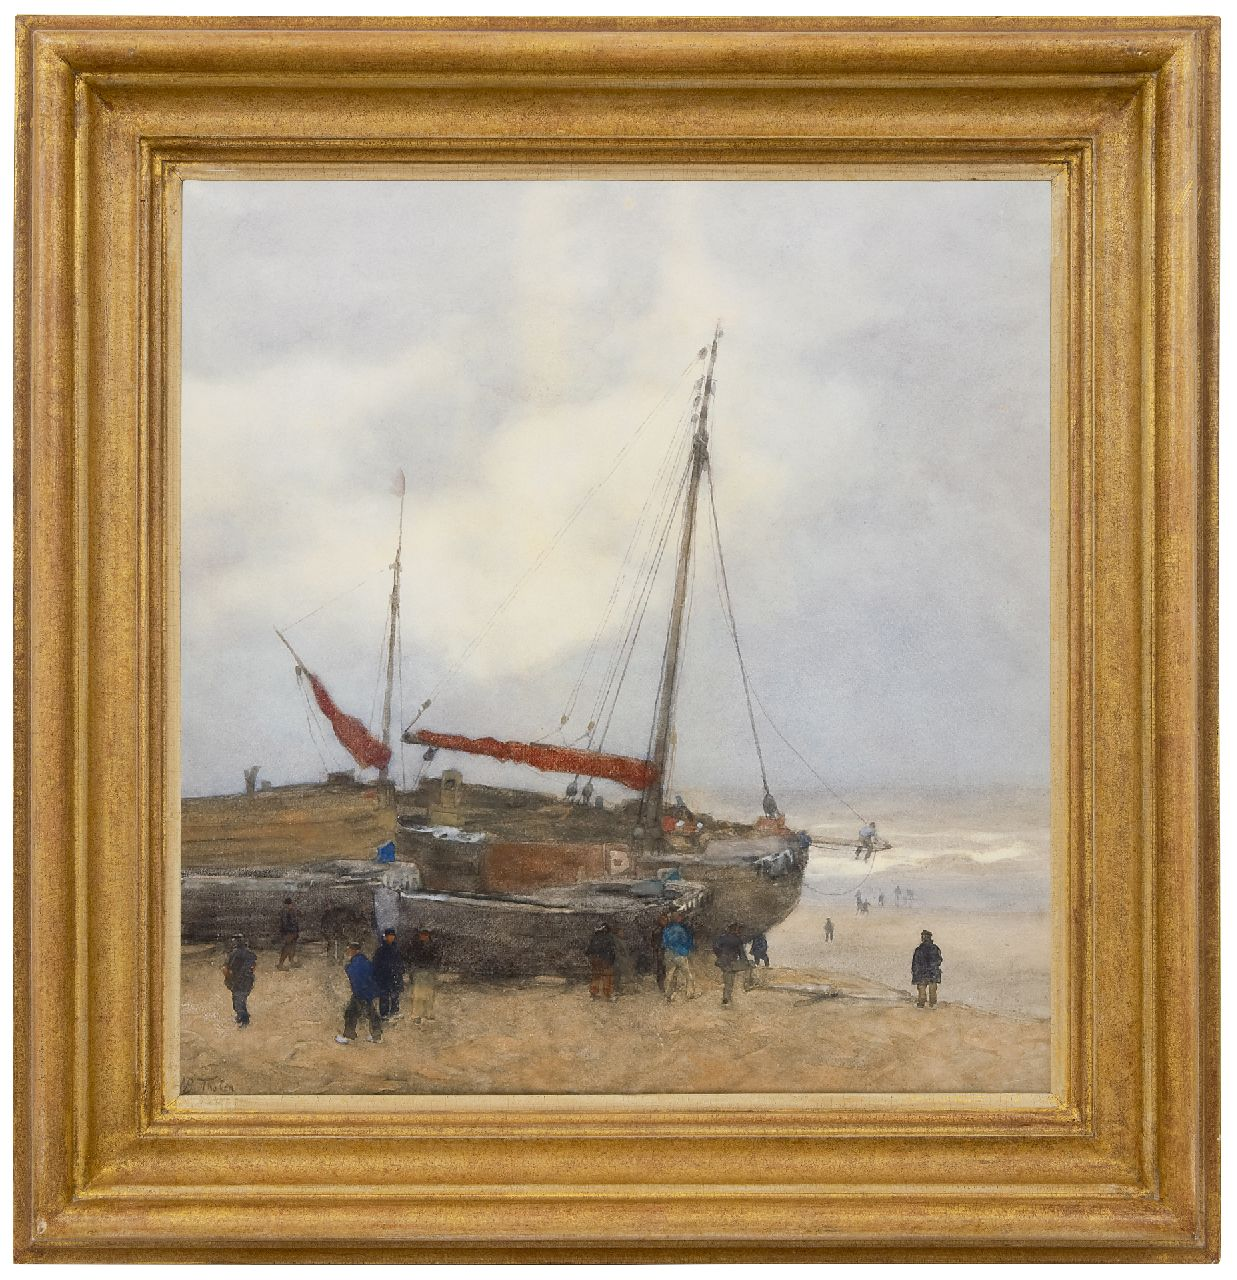 Tholen W.B.  | Willem Bastiaan Tholen | Watercolours and drawings offered for sale | Fishing boats on the beach at Scheveningen, watercolour and gouache on paper 55.0 x 52.0 cm, signed l.l.